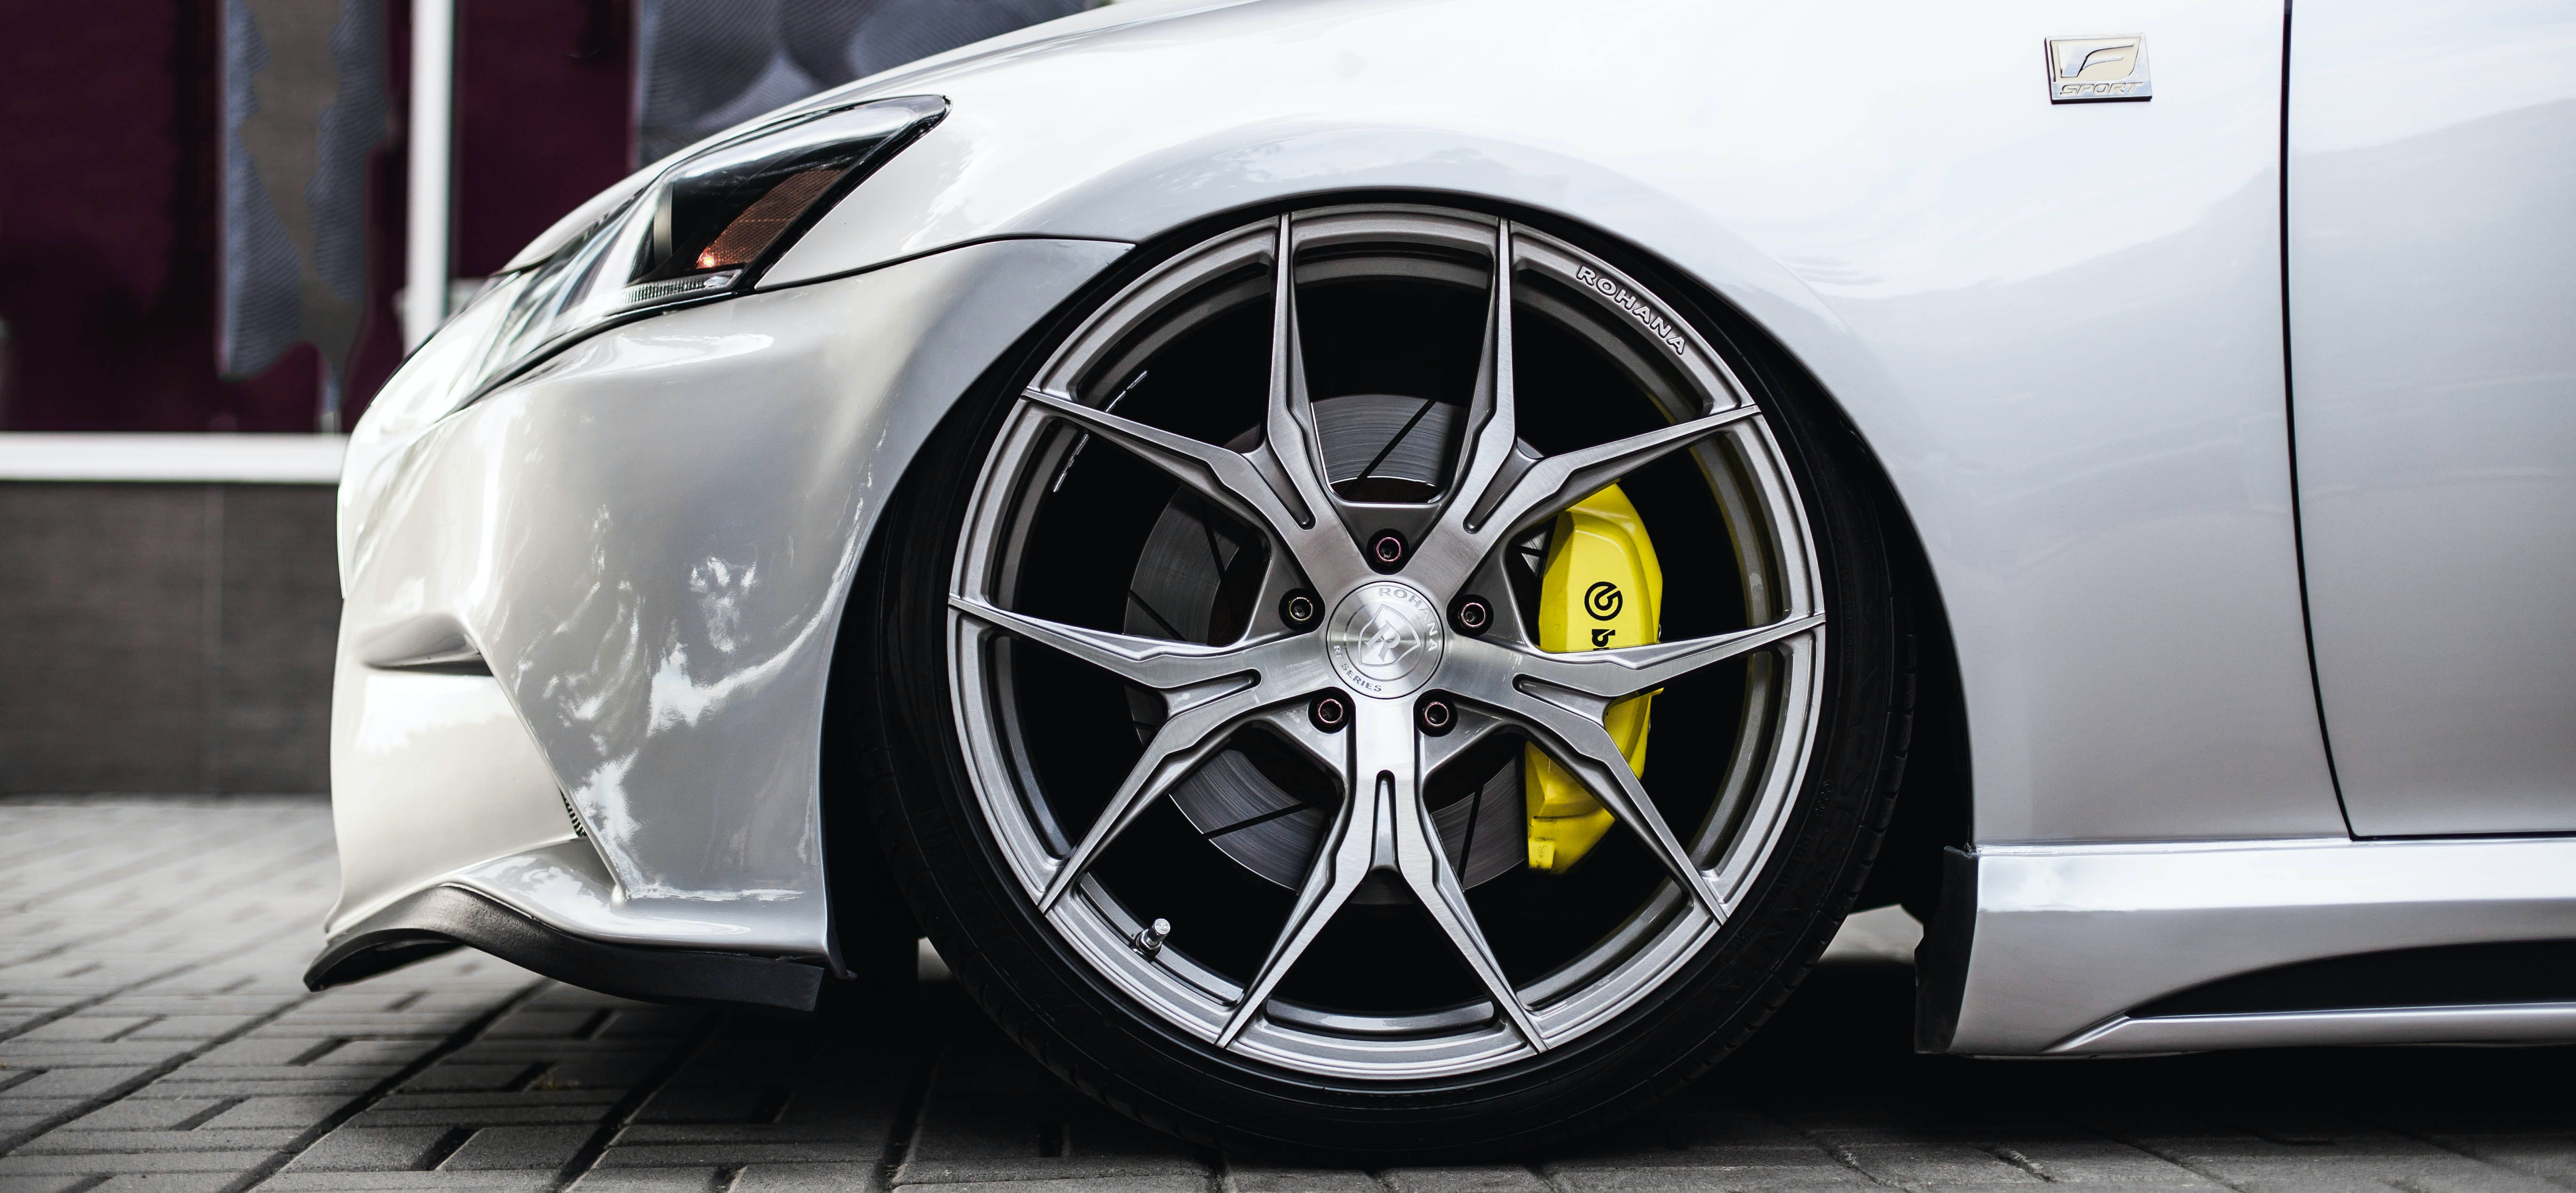 Rohana Sports Vehicle in white focused on the rims of the wheel